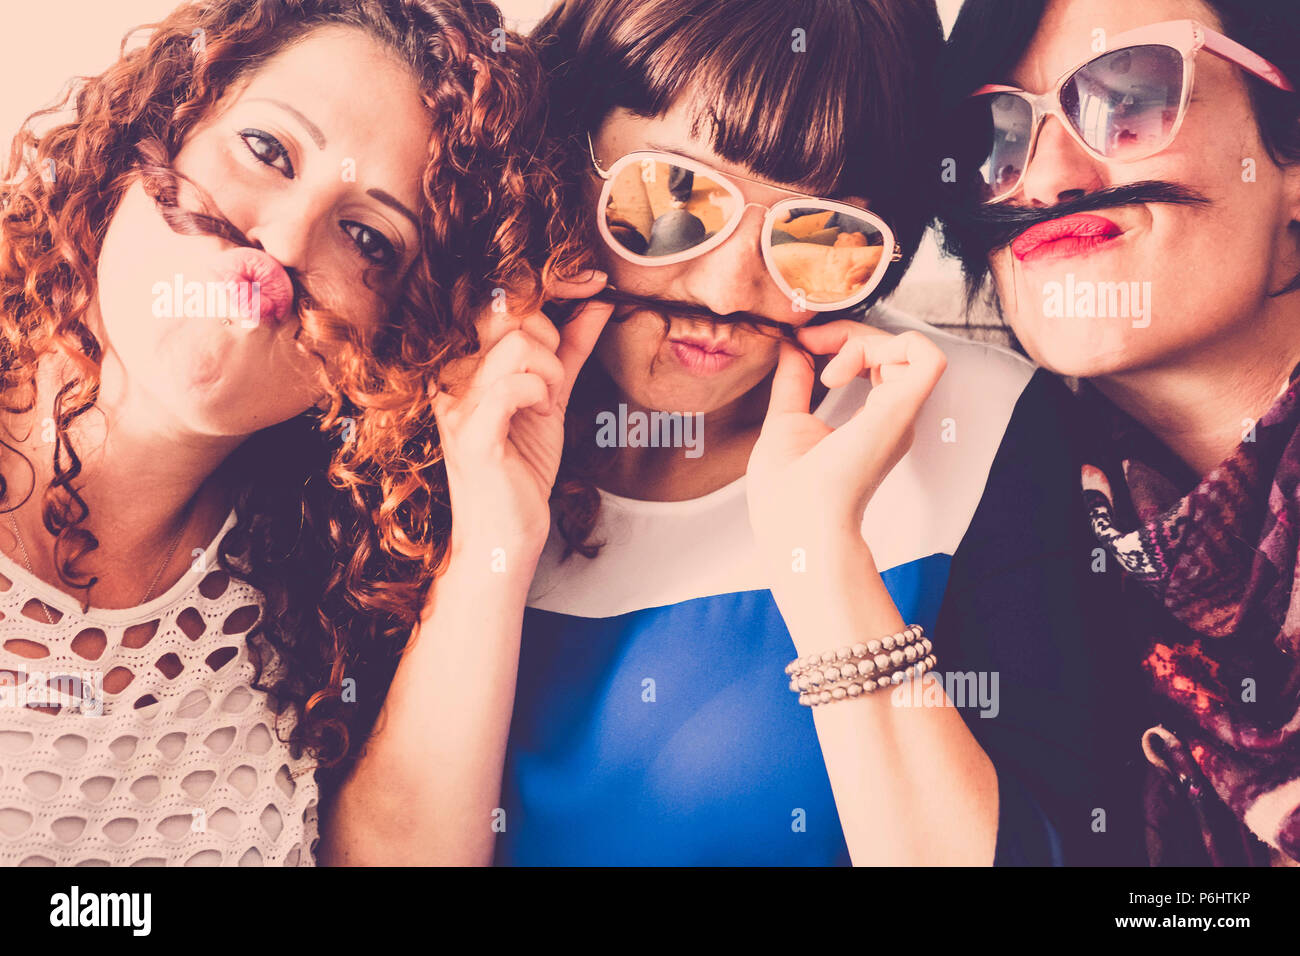 three caucasian females friends stay together in friendship and craziness using hair like moustache and happiness relationship concept. vintage full c - Stock Image